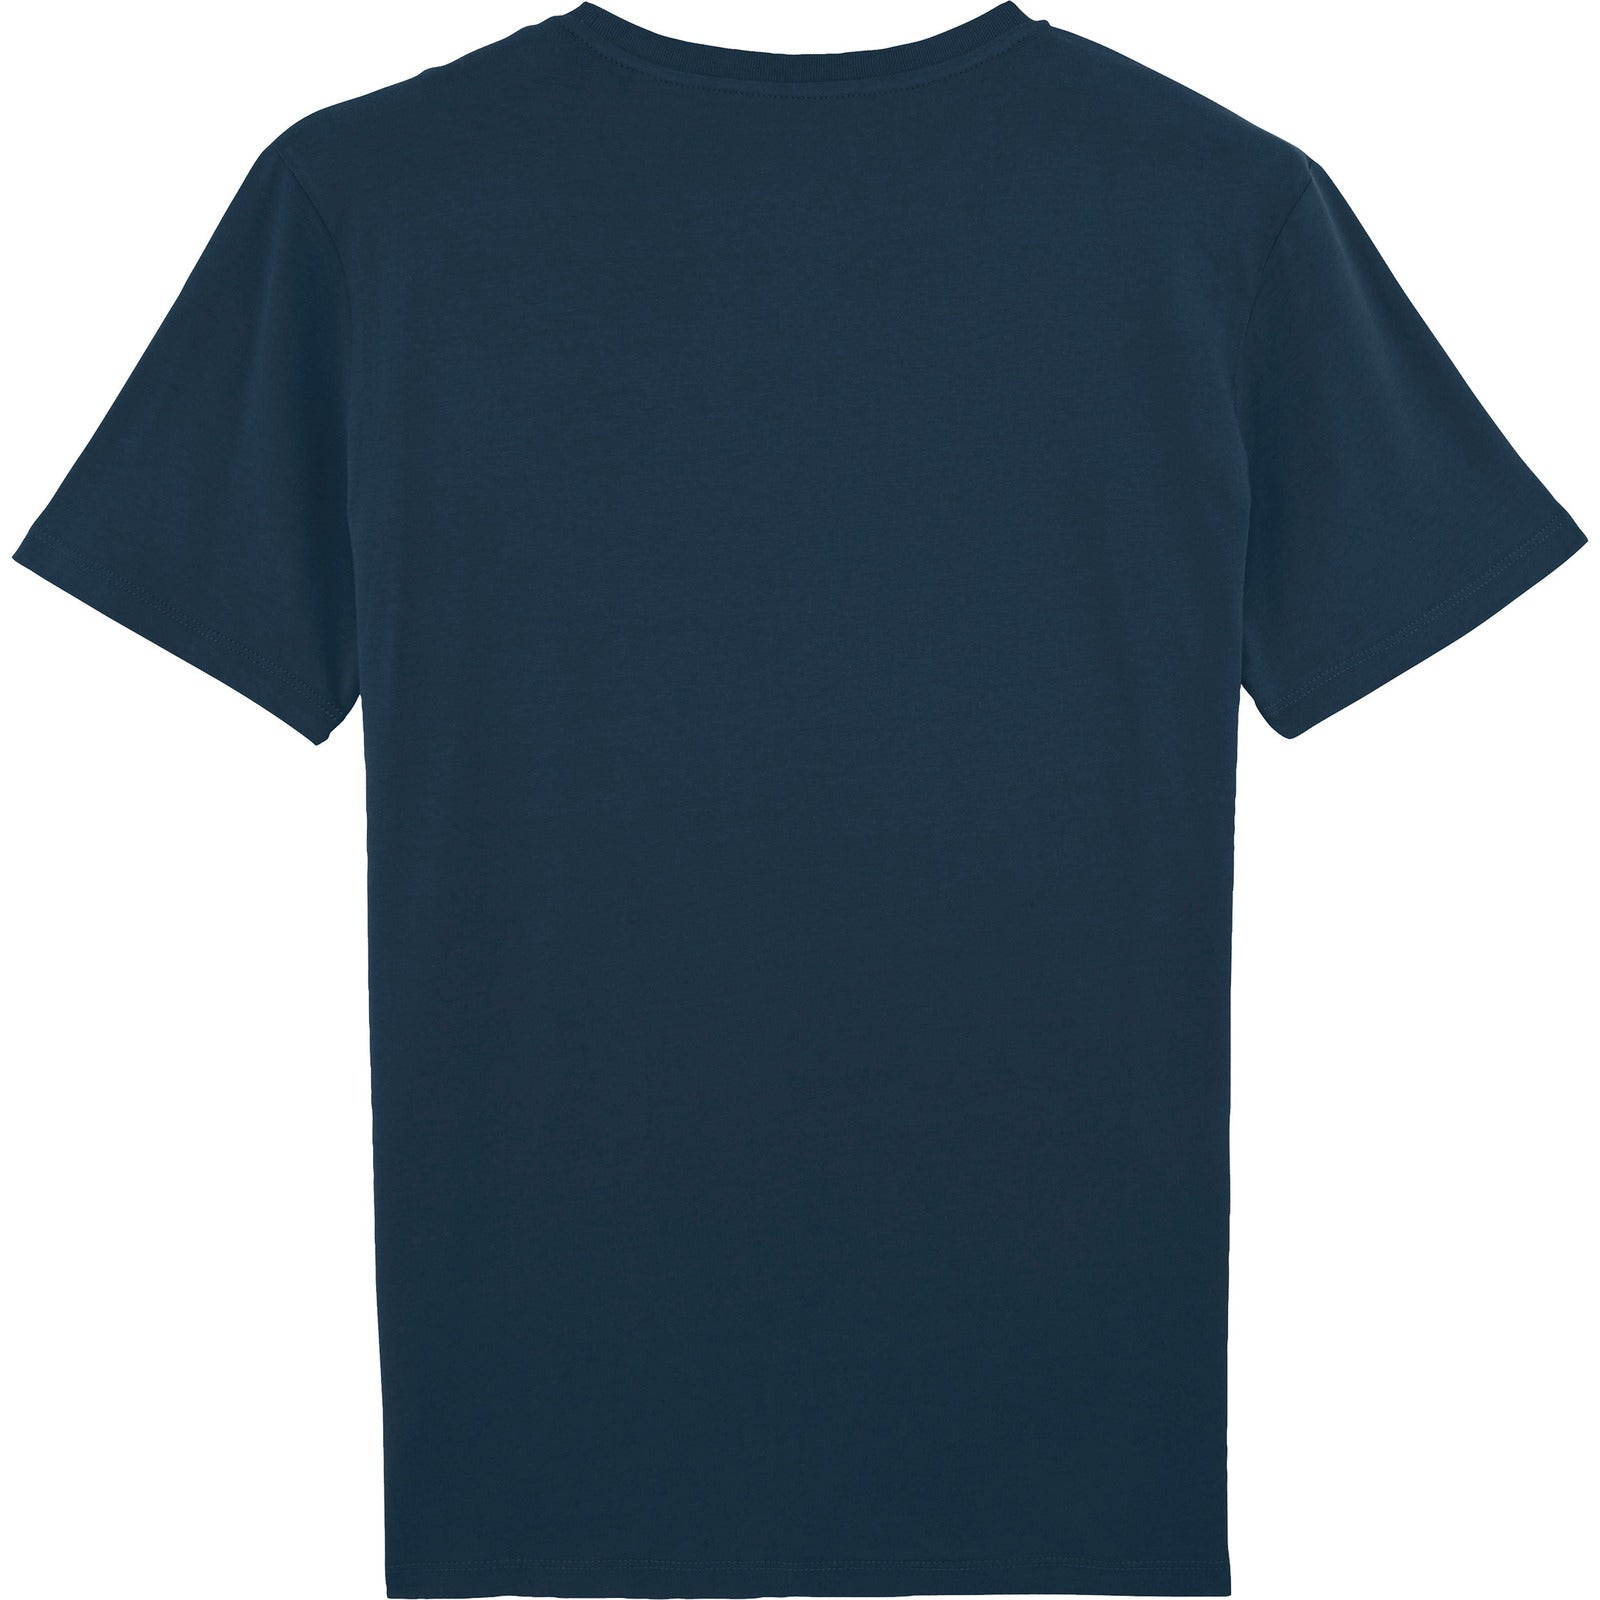 T-SHIRT REGULAR FIT [NAVY]